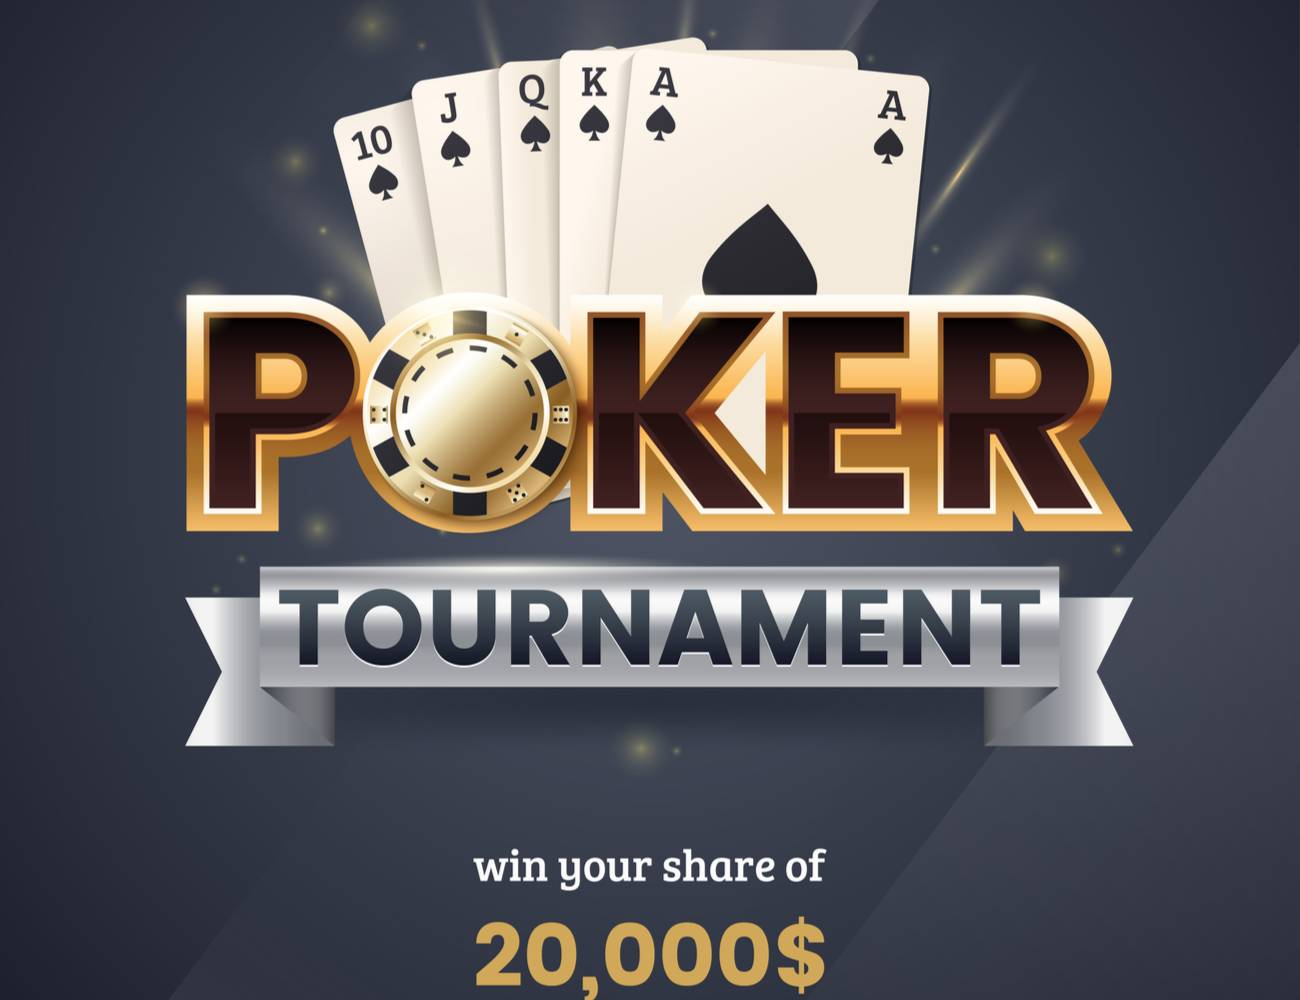 Poker tournament banner in front of a royal flush poker combination.